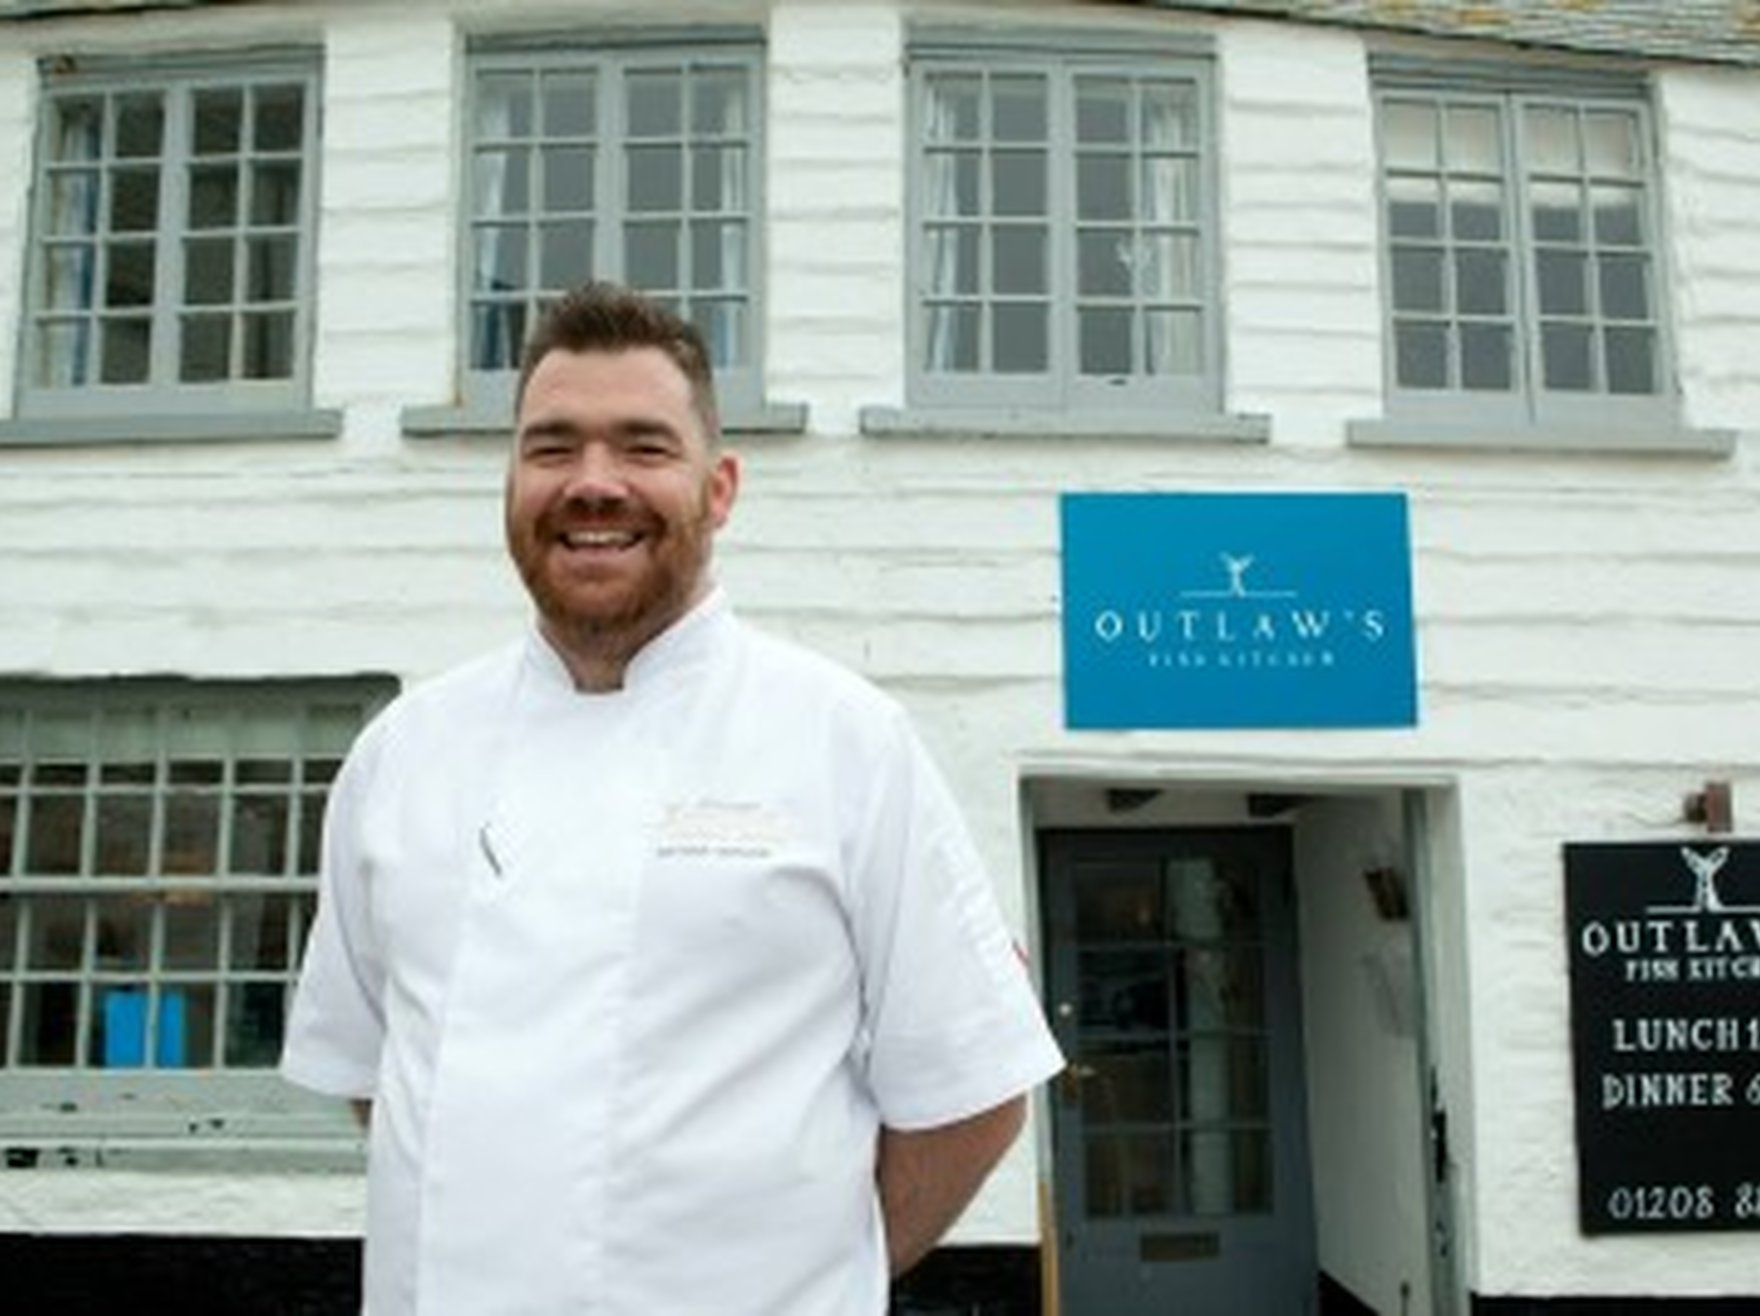 An Evening with Nathan Outlaw